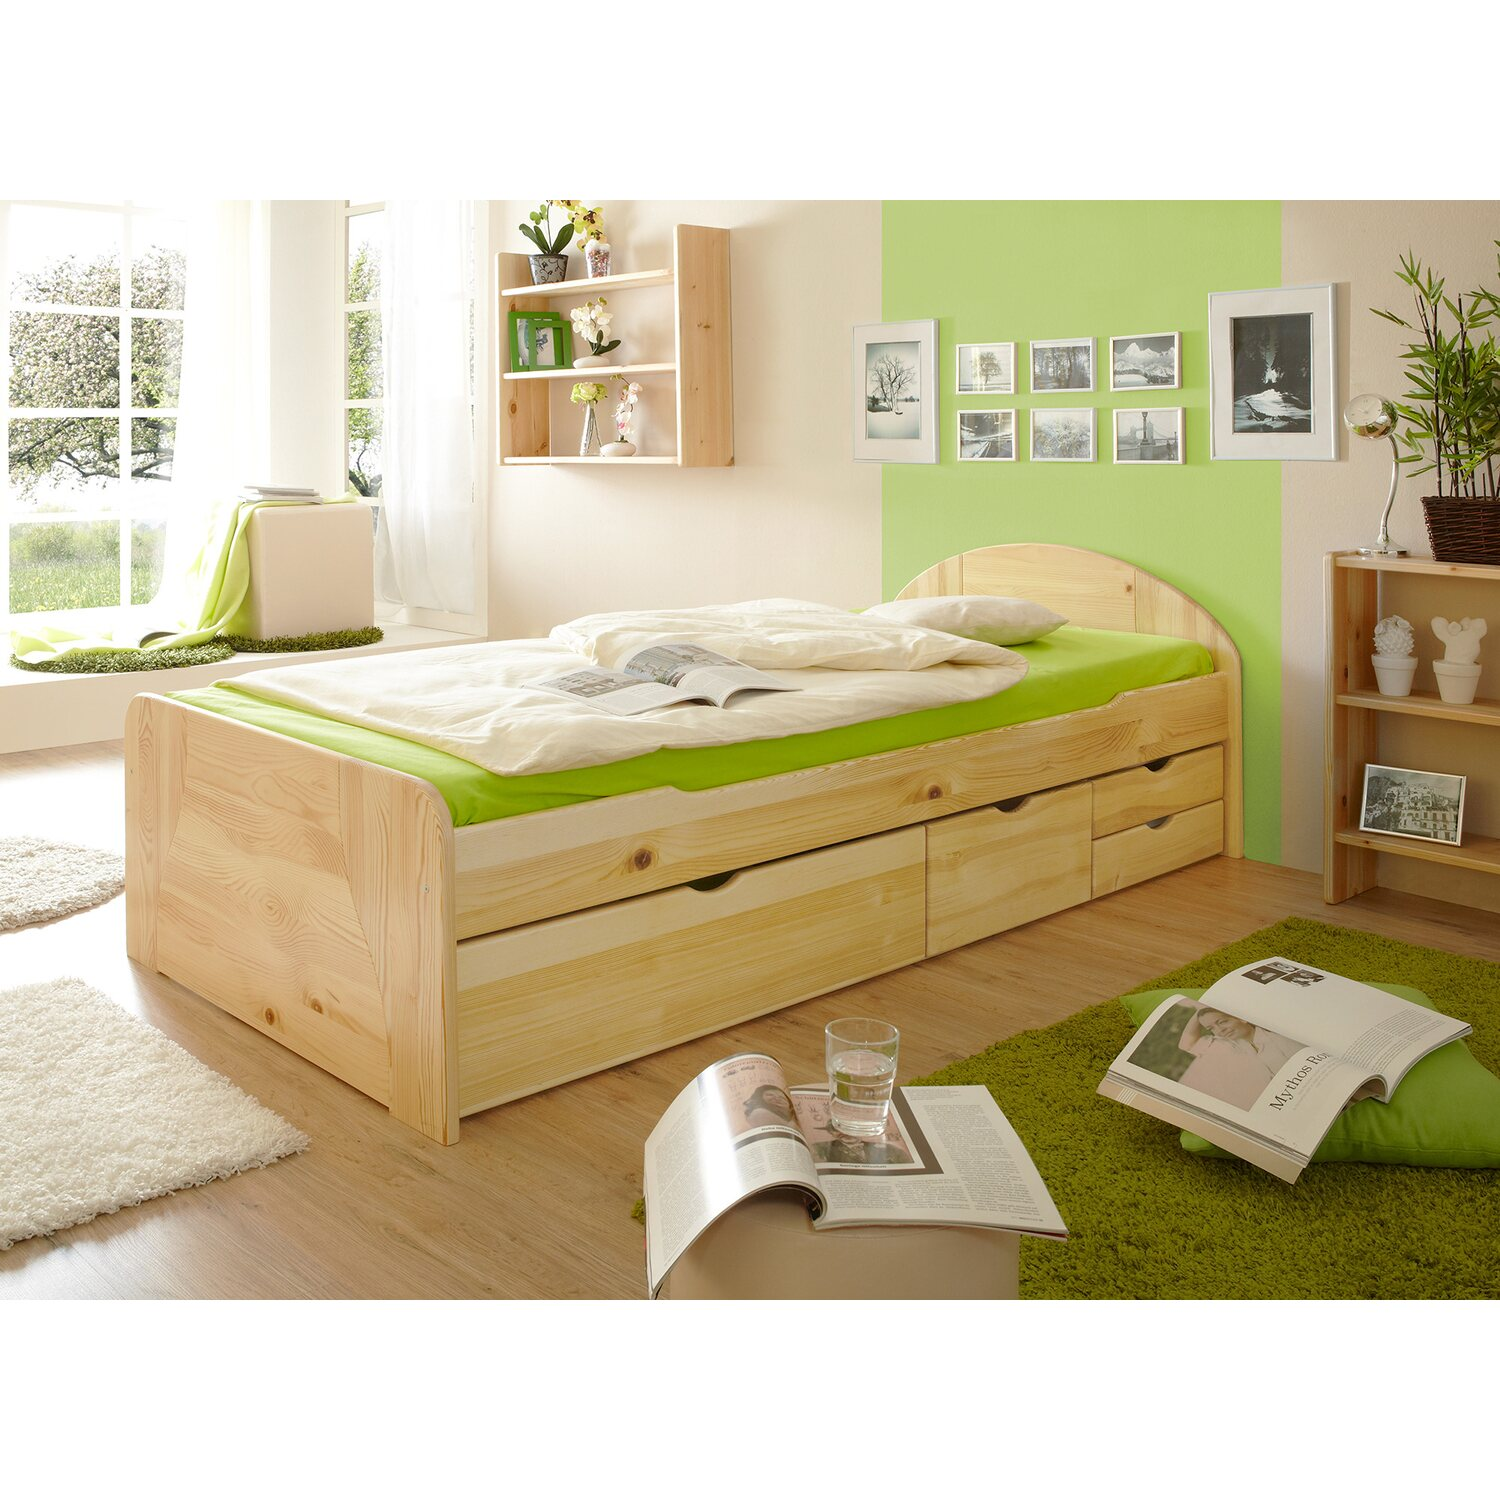 natur kiefer funktionsbetten online kaufen m bel. Black Bedroom Furniture Sets. Home Design Ideas